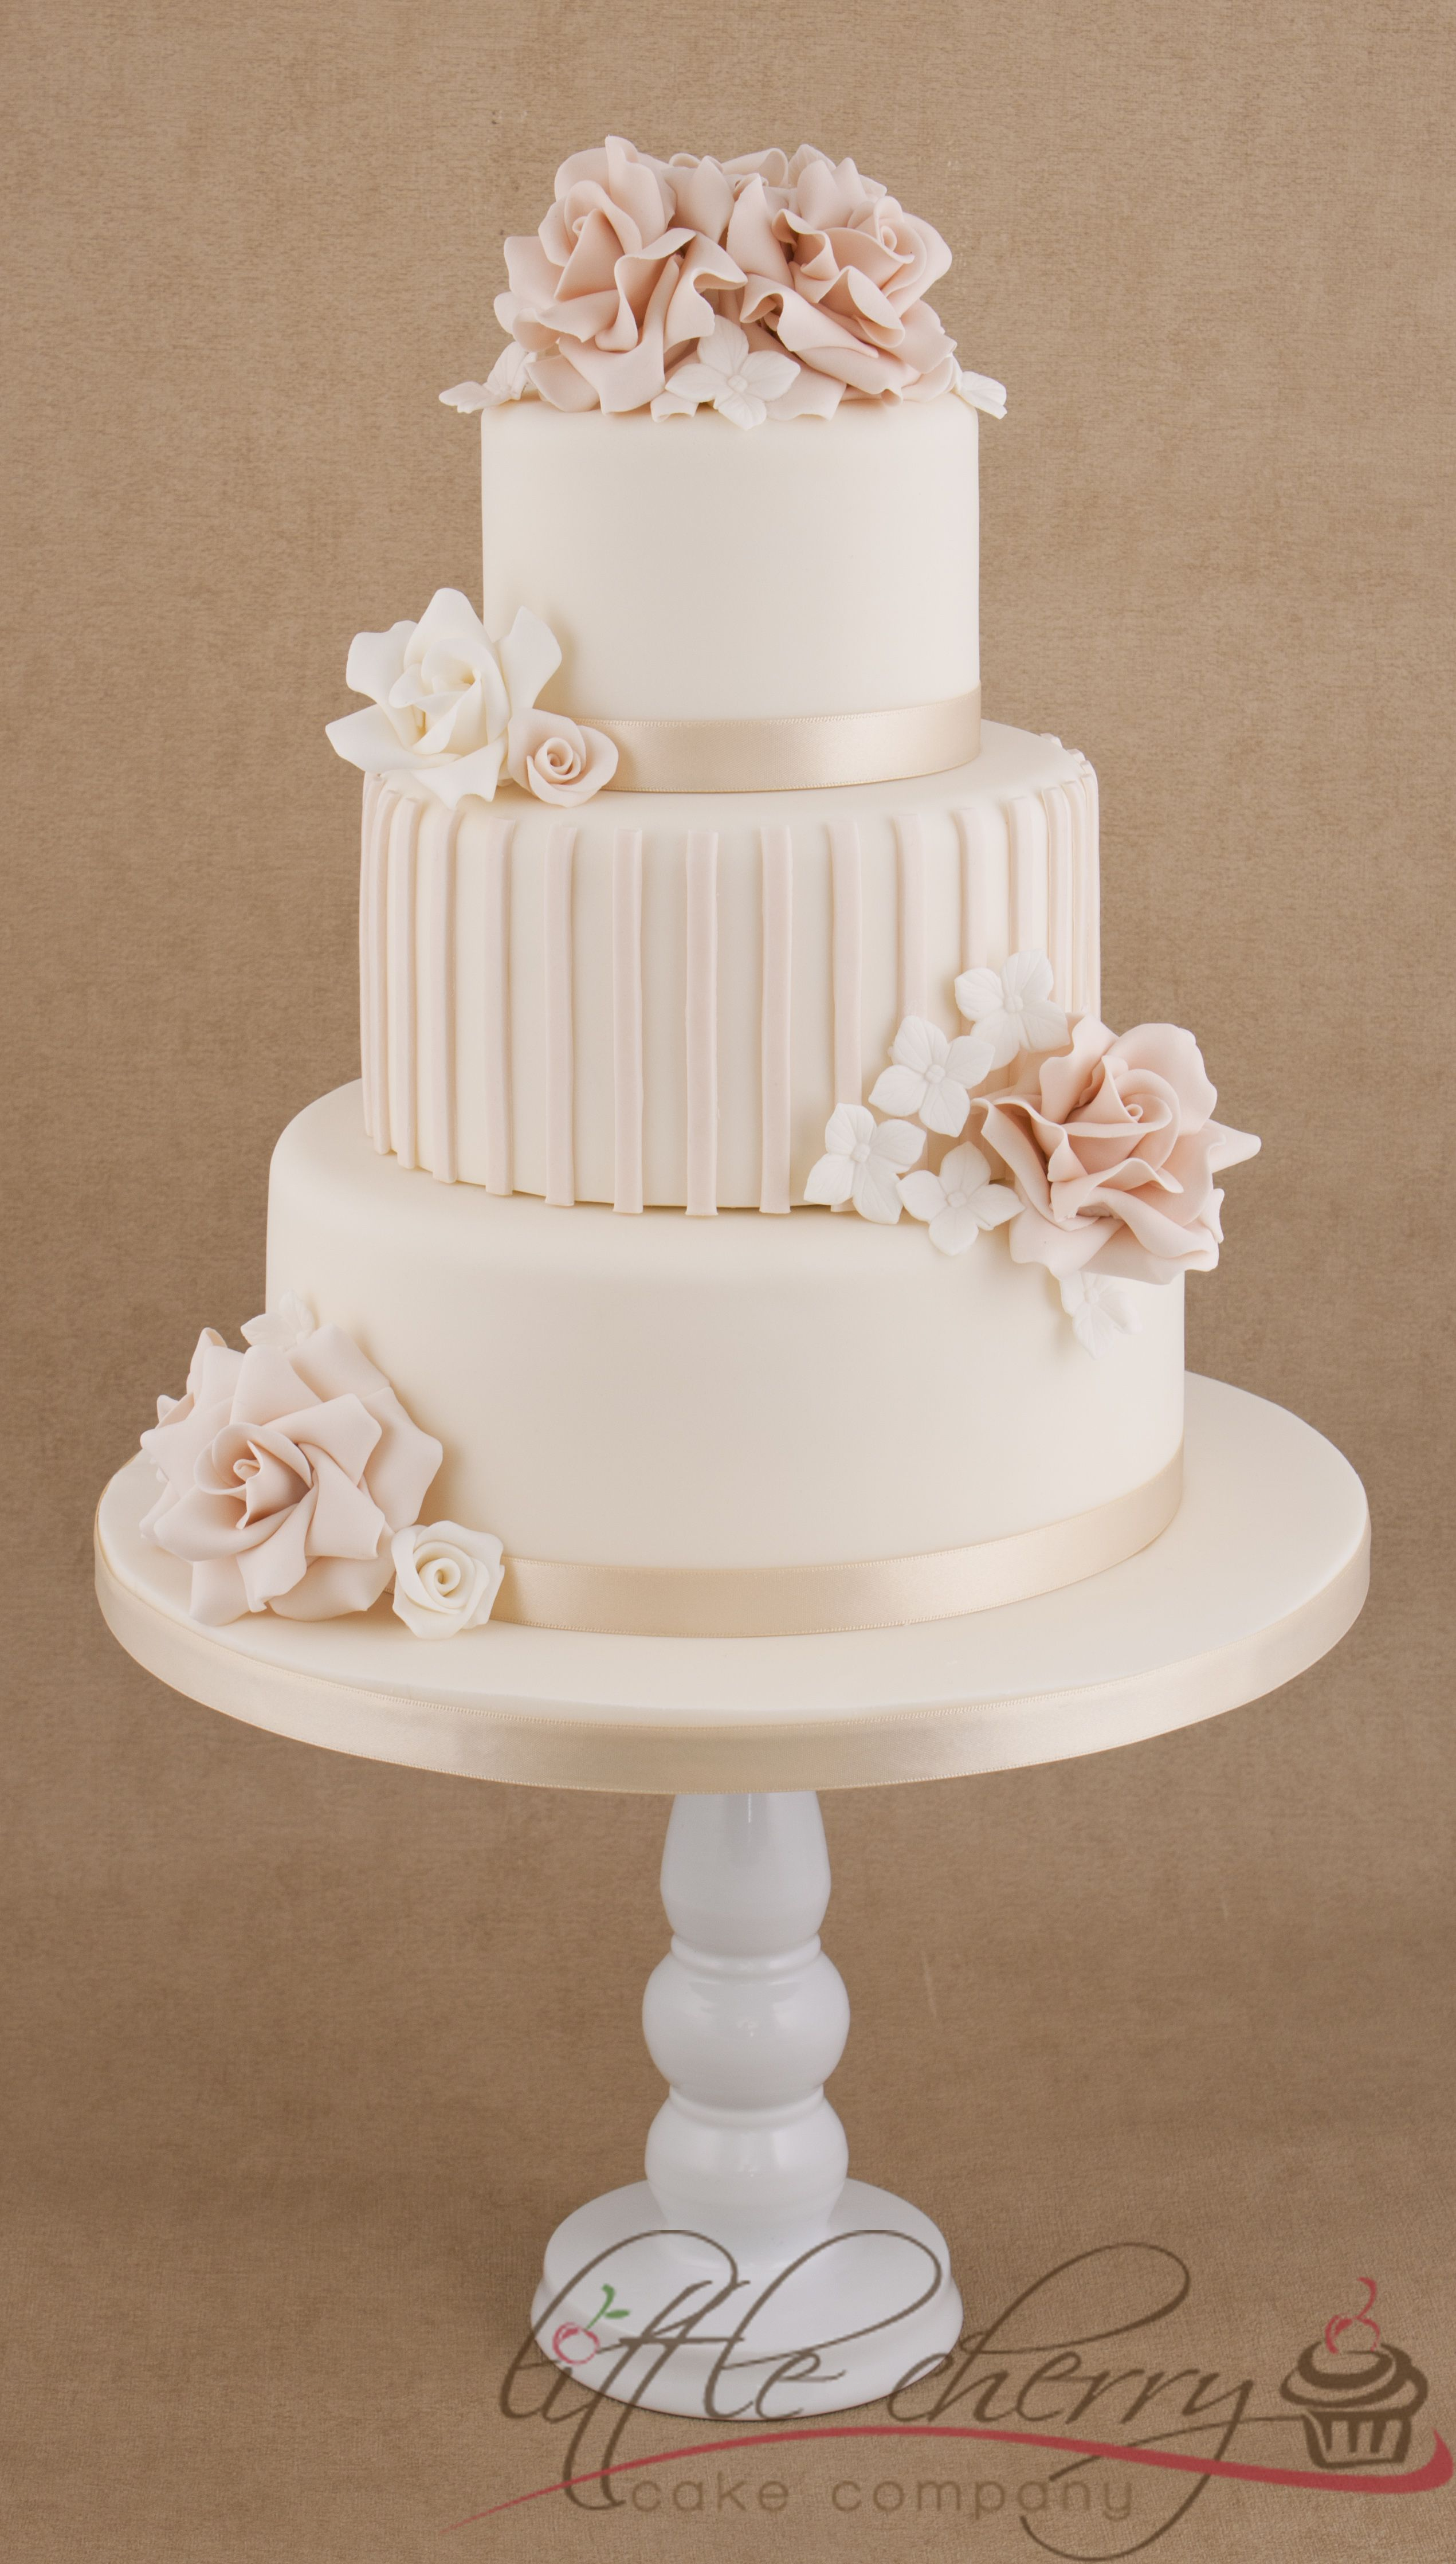 Roses And Stripes 3 Tier Wedding Cake Bride Give Me Free Reign